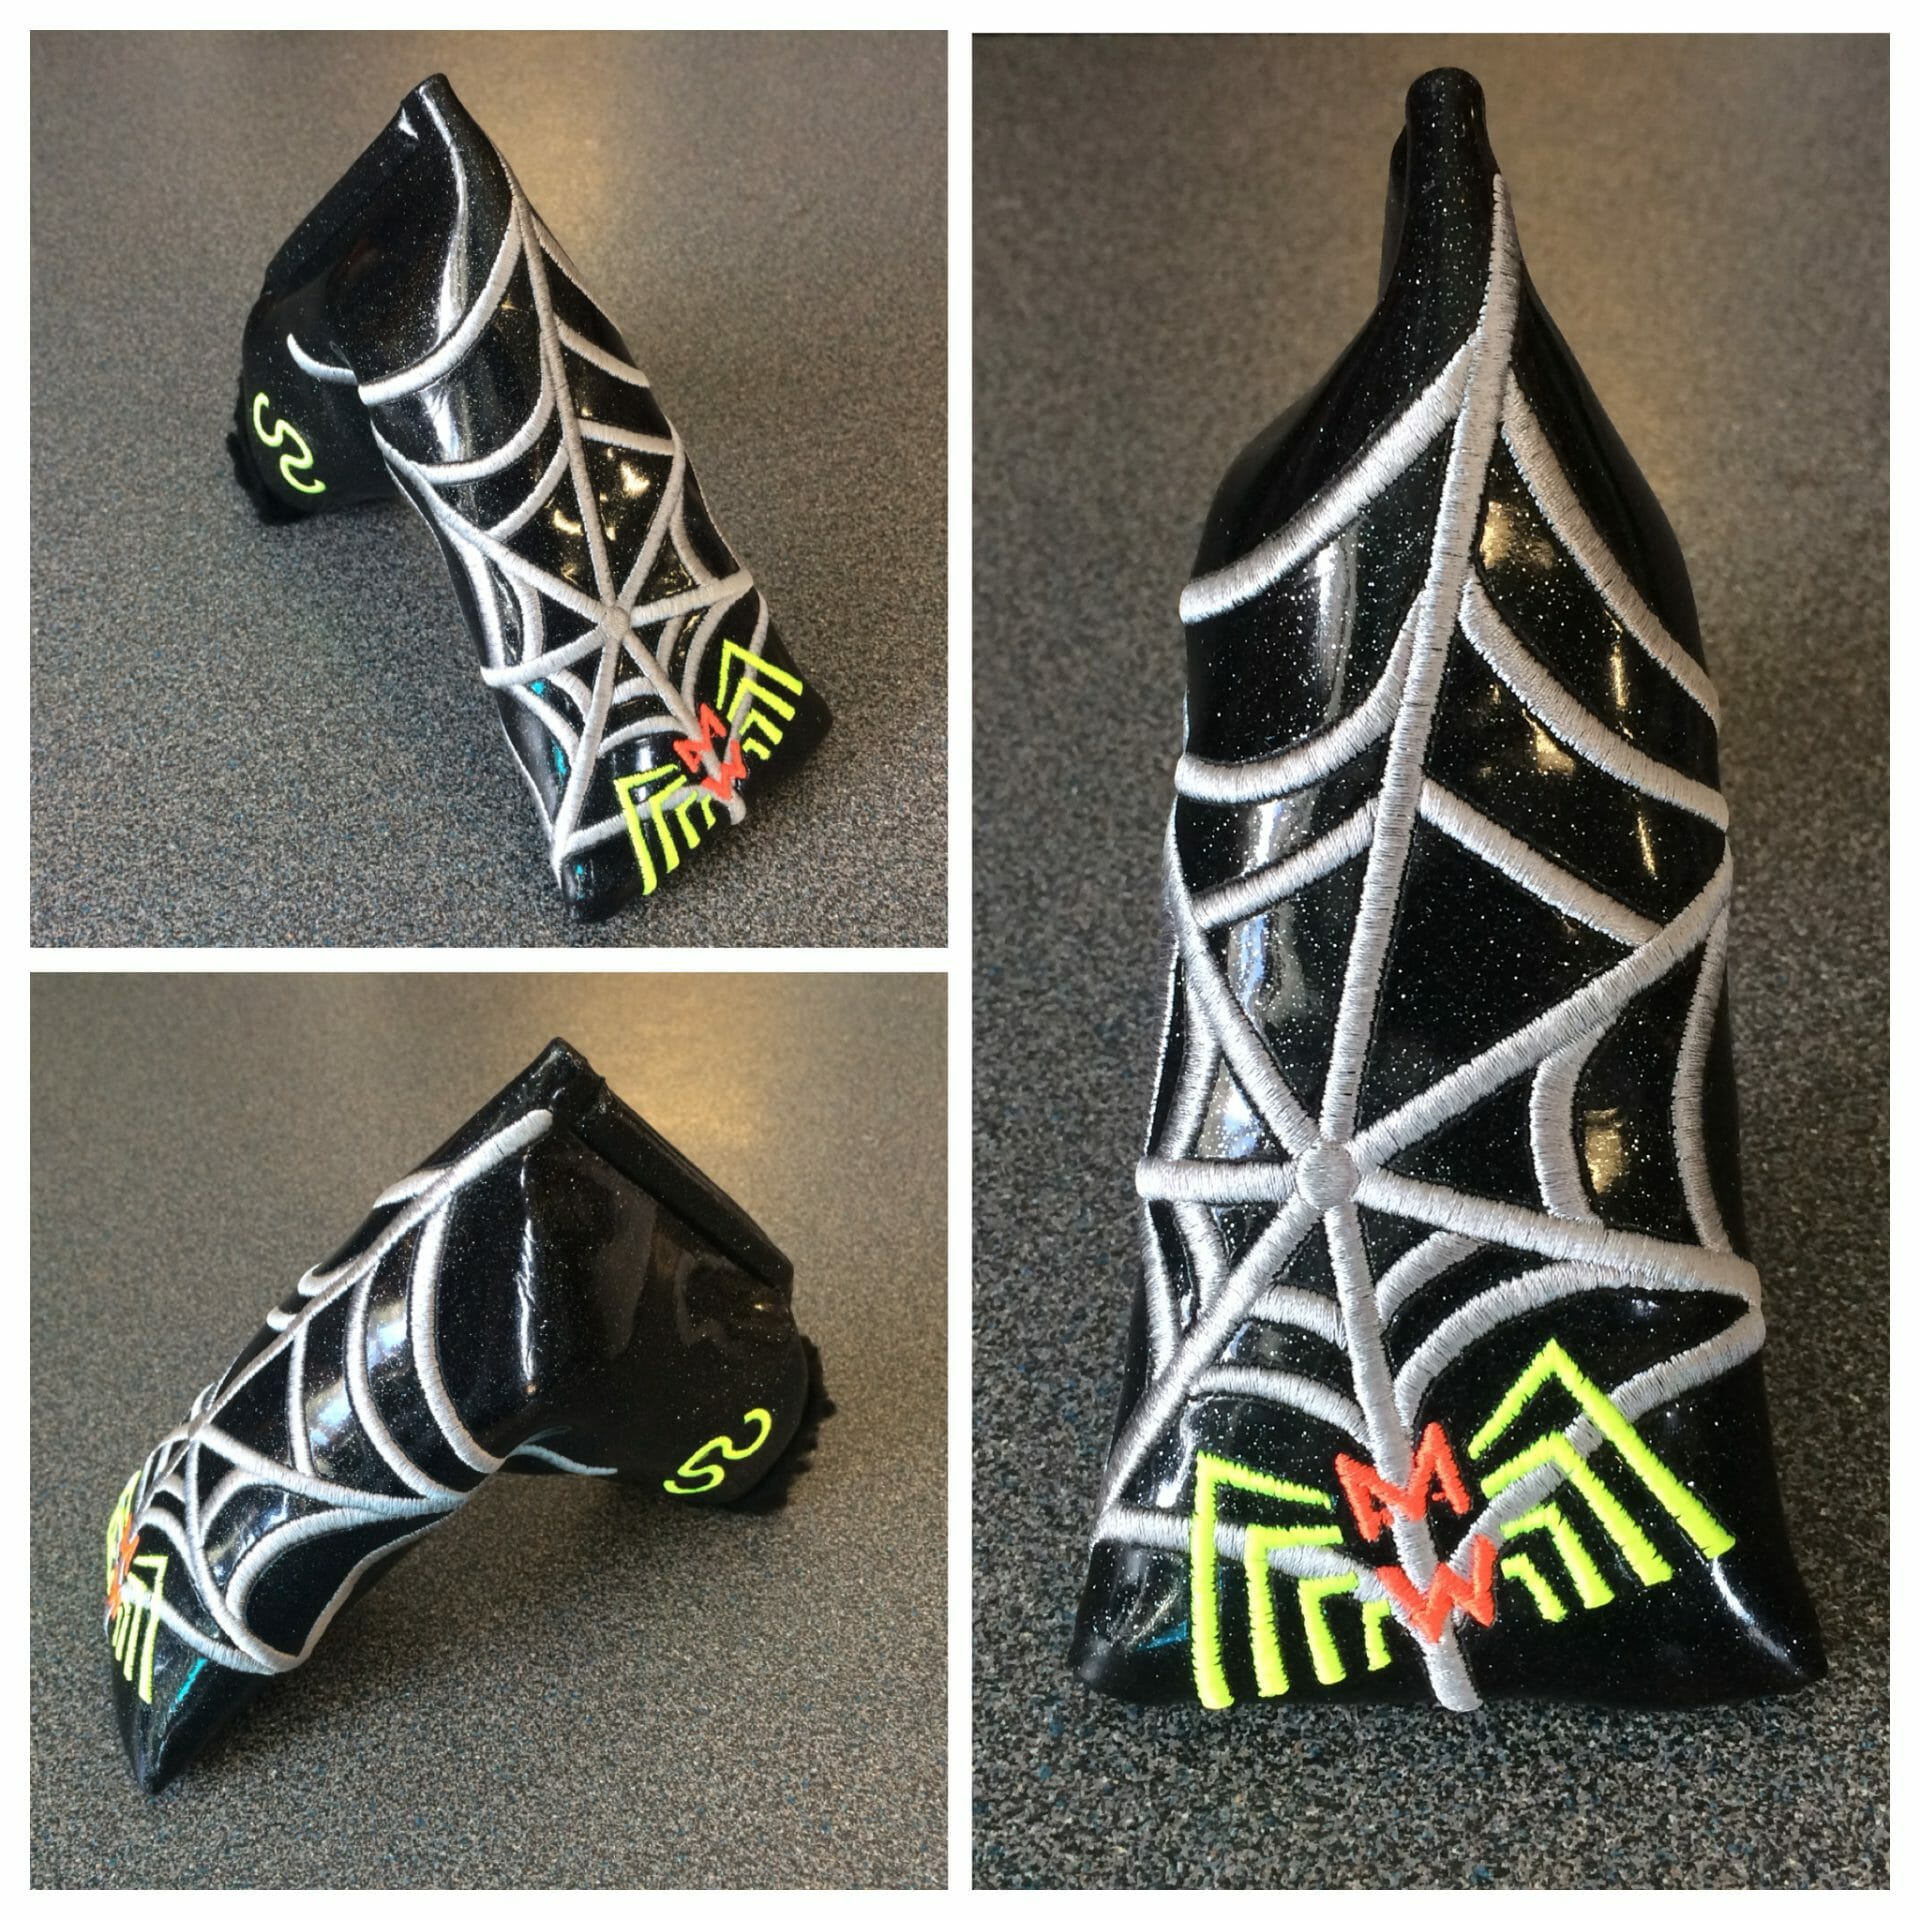 from-plain-insane-spider-design-bespoke-head-cover